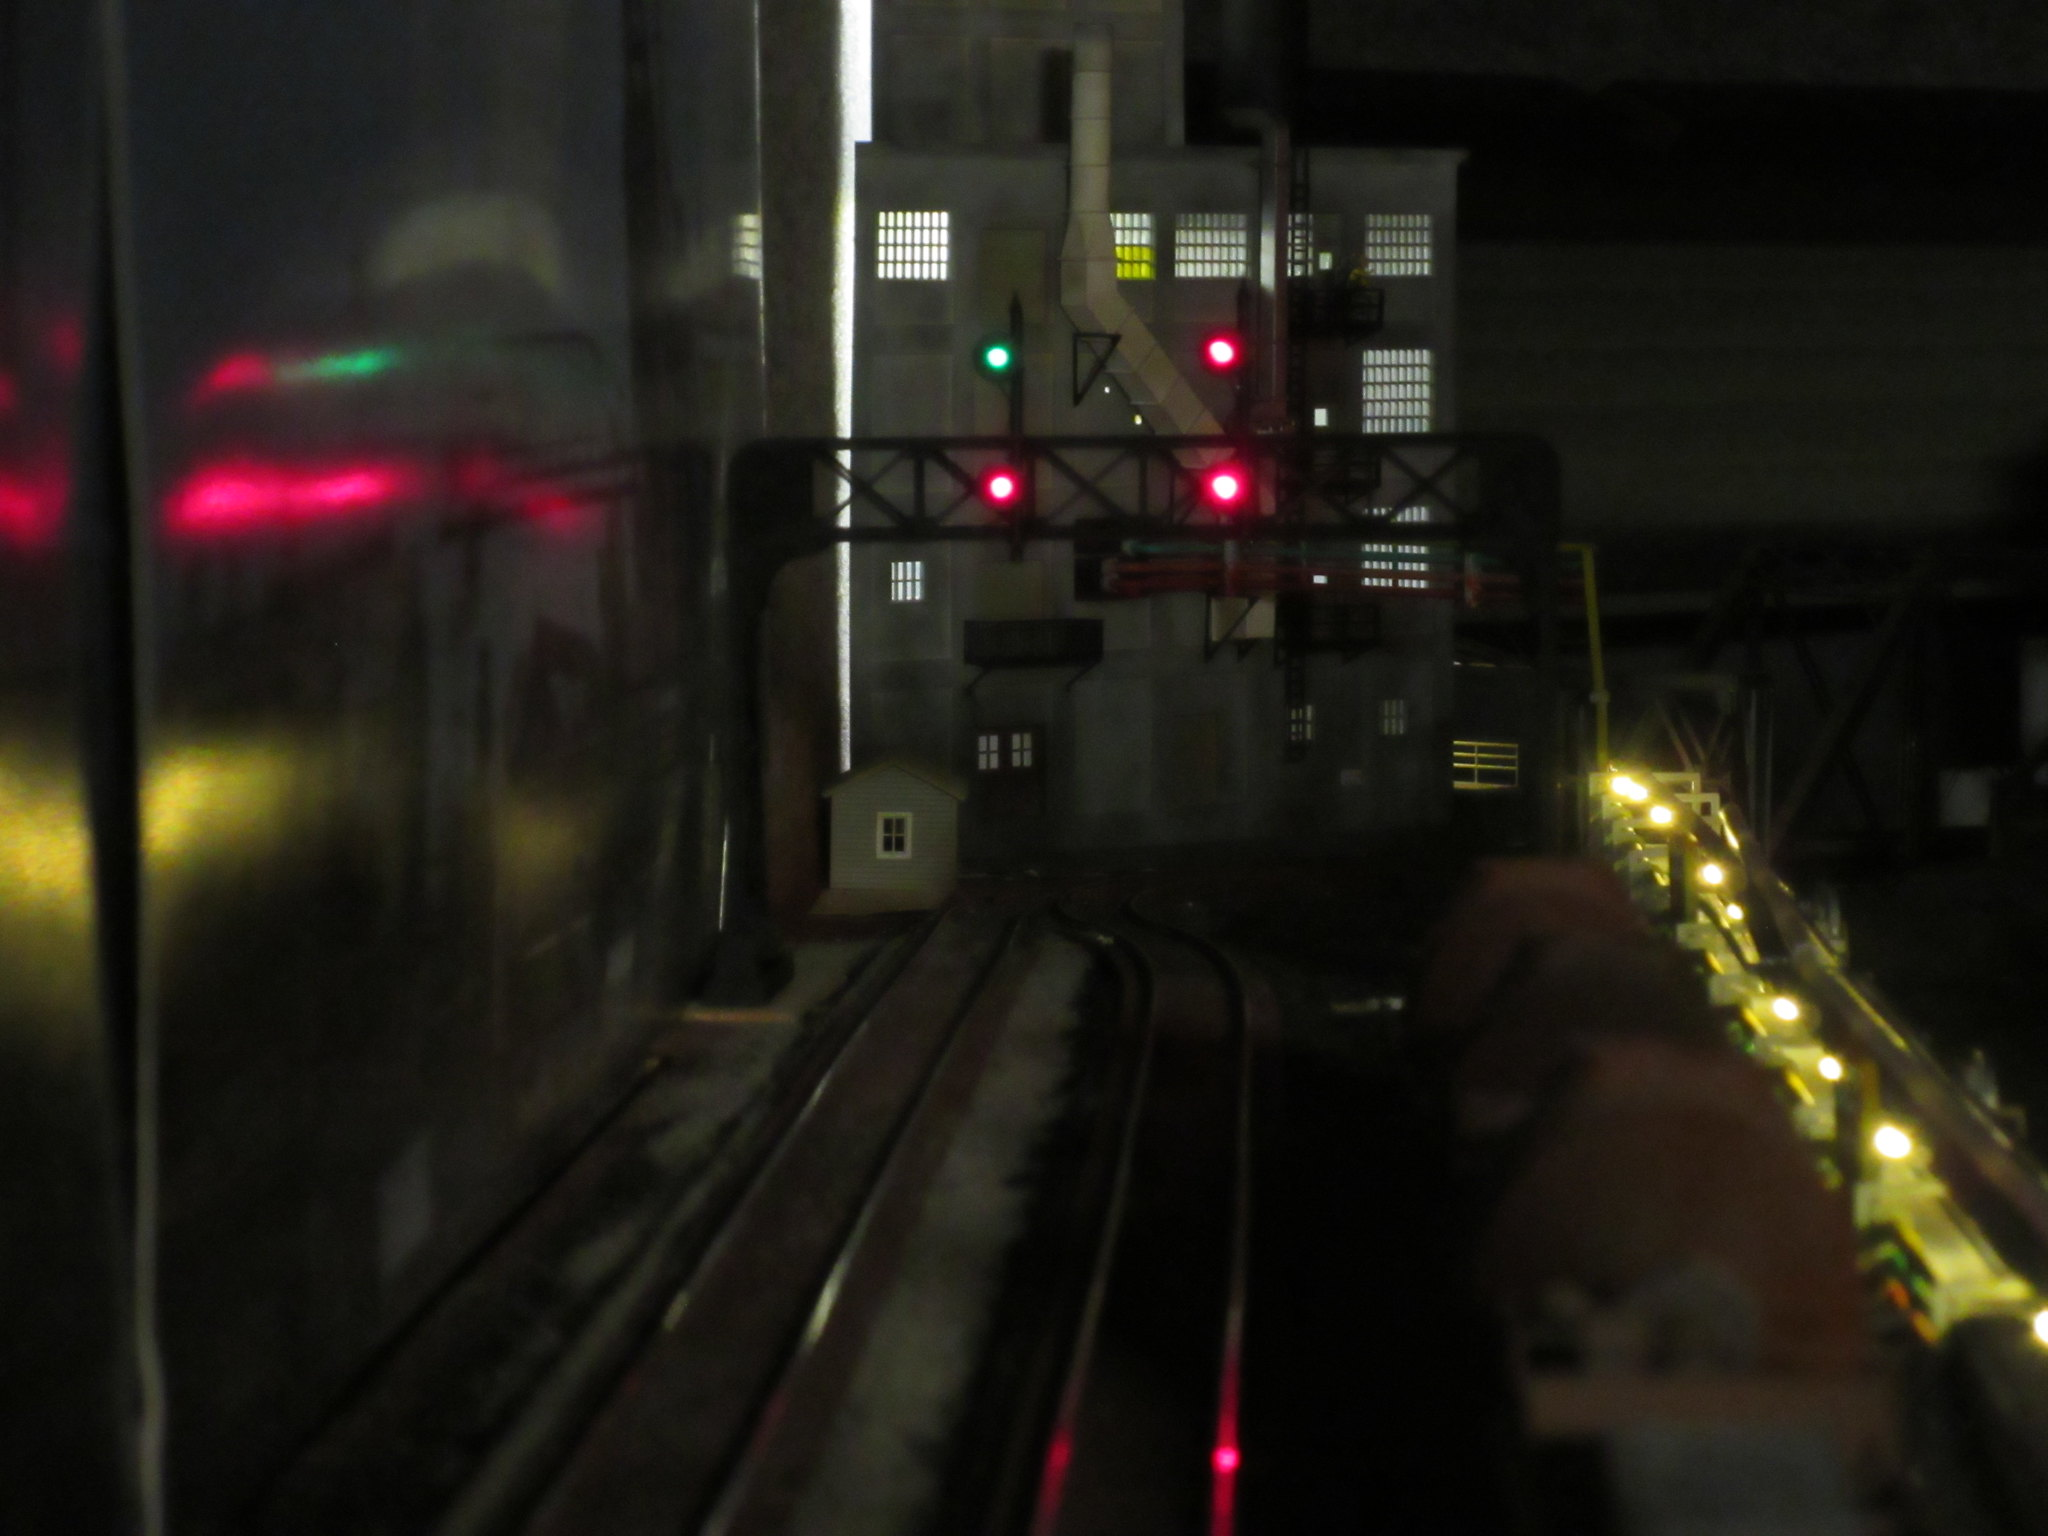 Signal Lights For Show Or Operations Model Railroader Magazine Stop Override Railways Img 6236